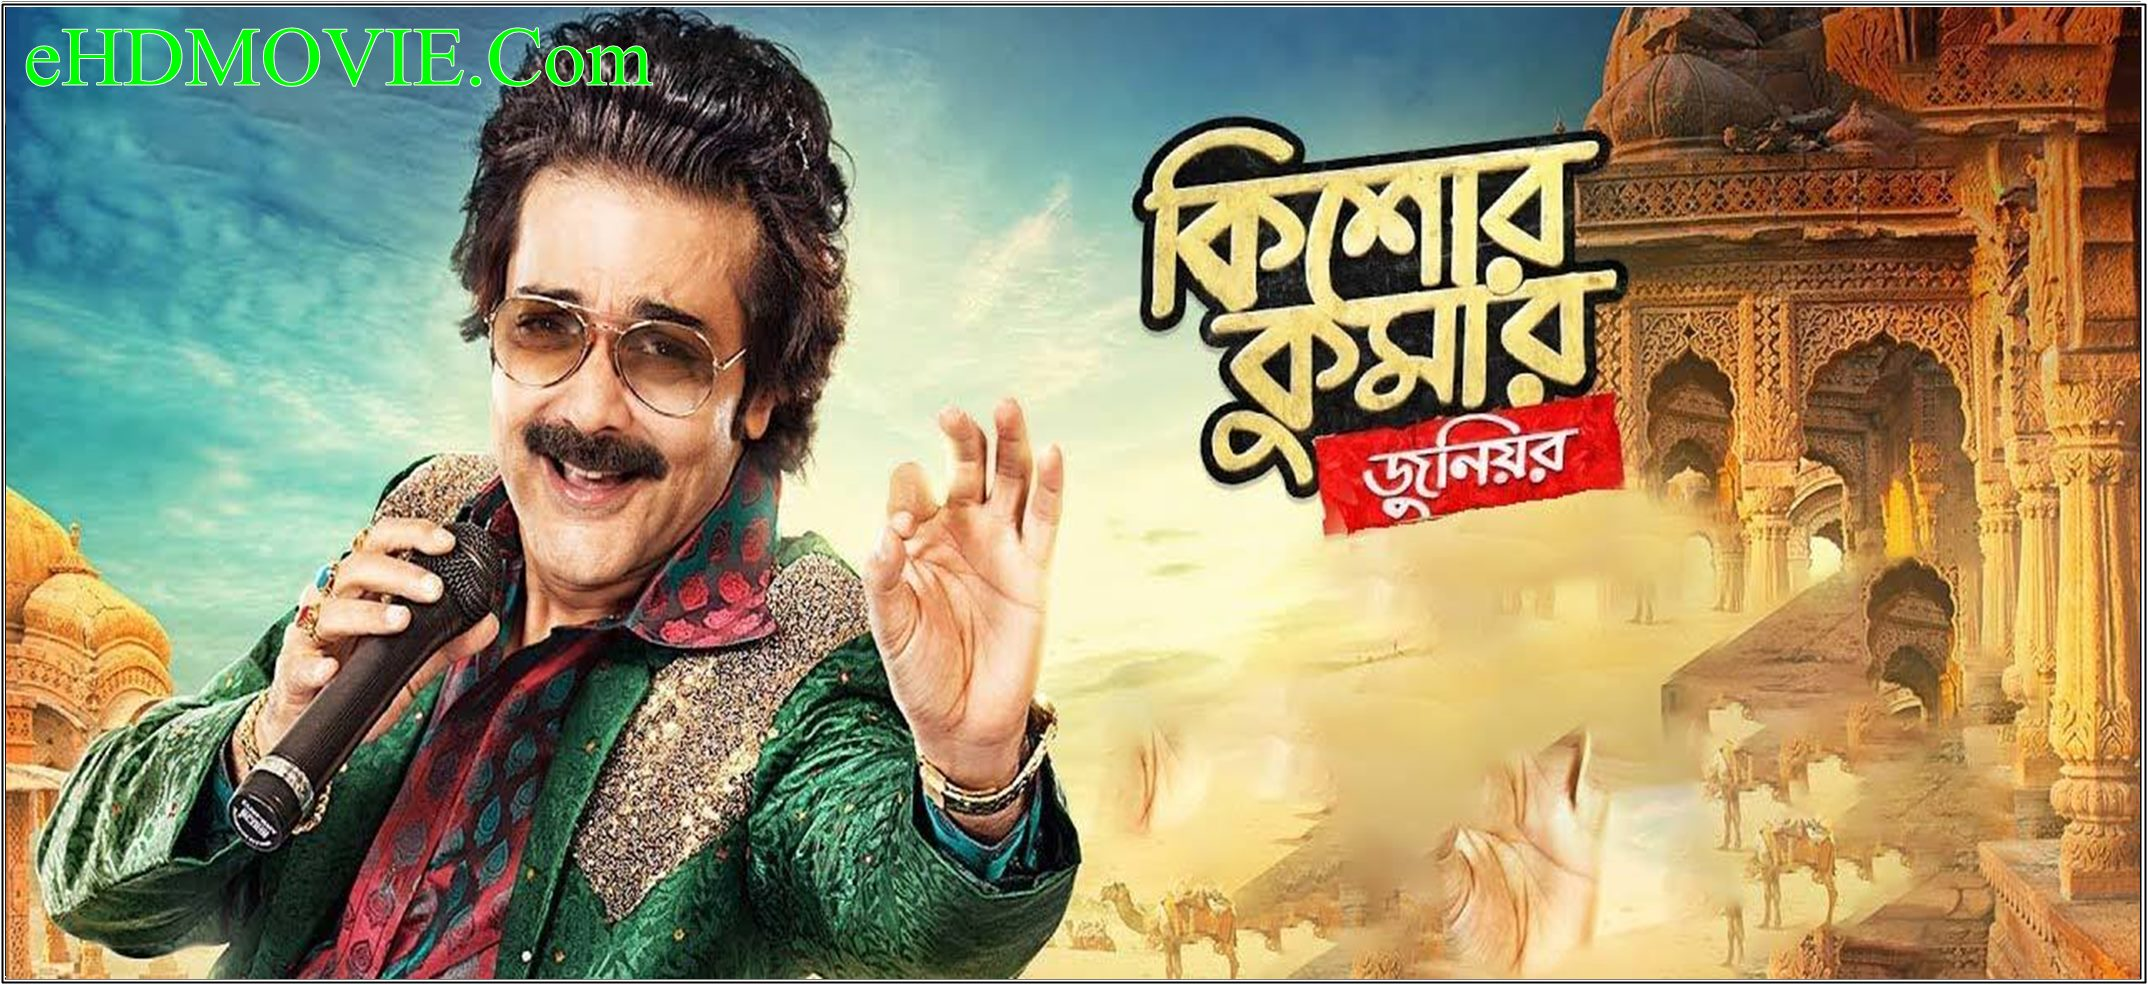 Kishore Kumar Junior 2018 Bengali Full Movie 480p – 720p ORG WEB-DL 450MB – 900MB